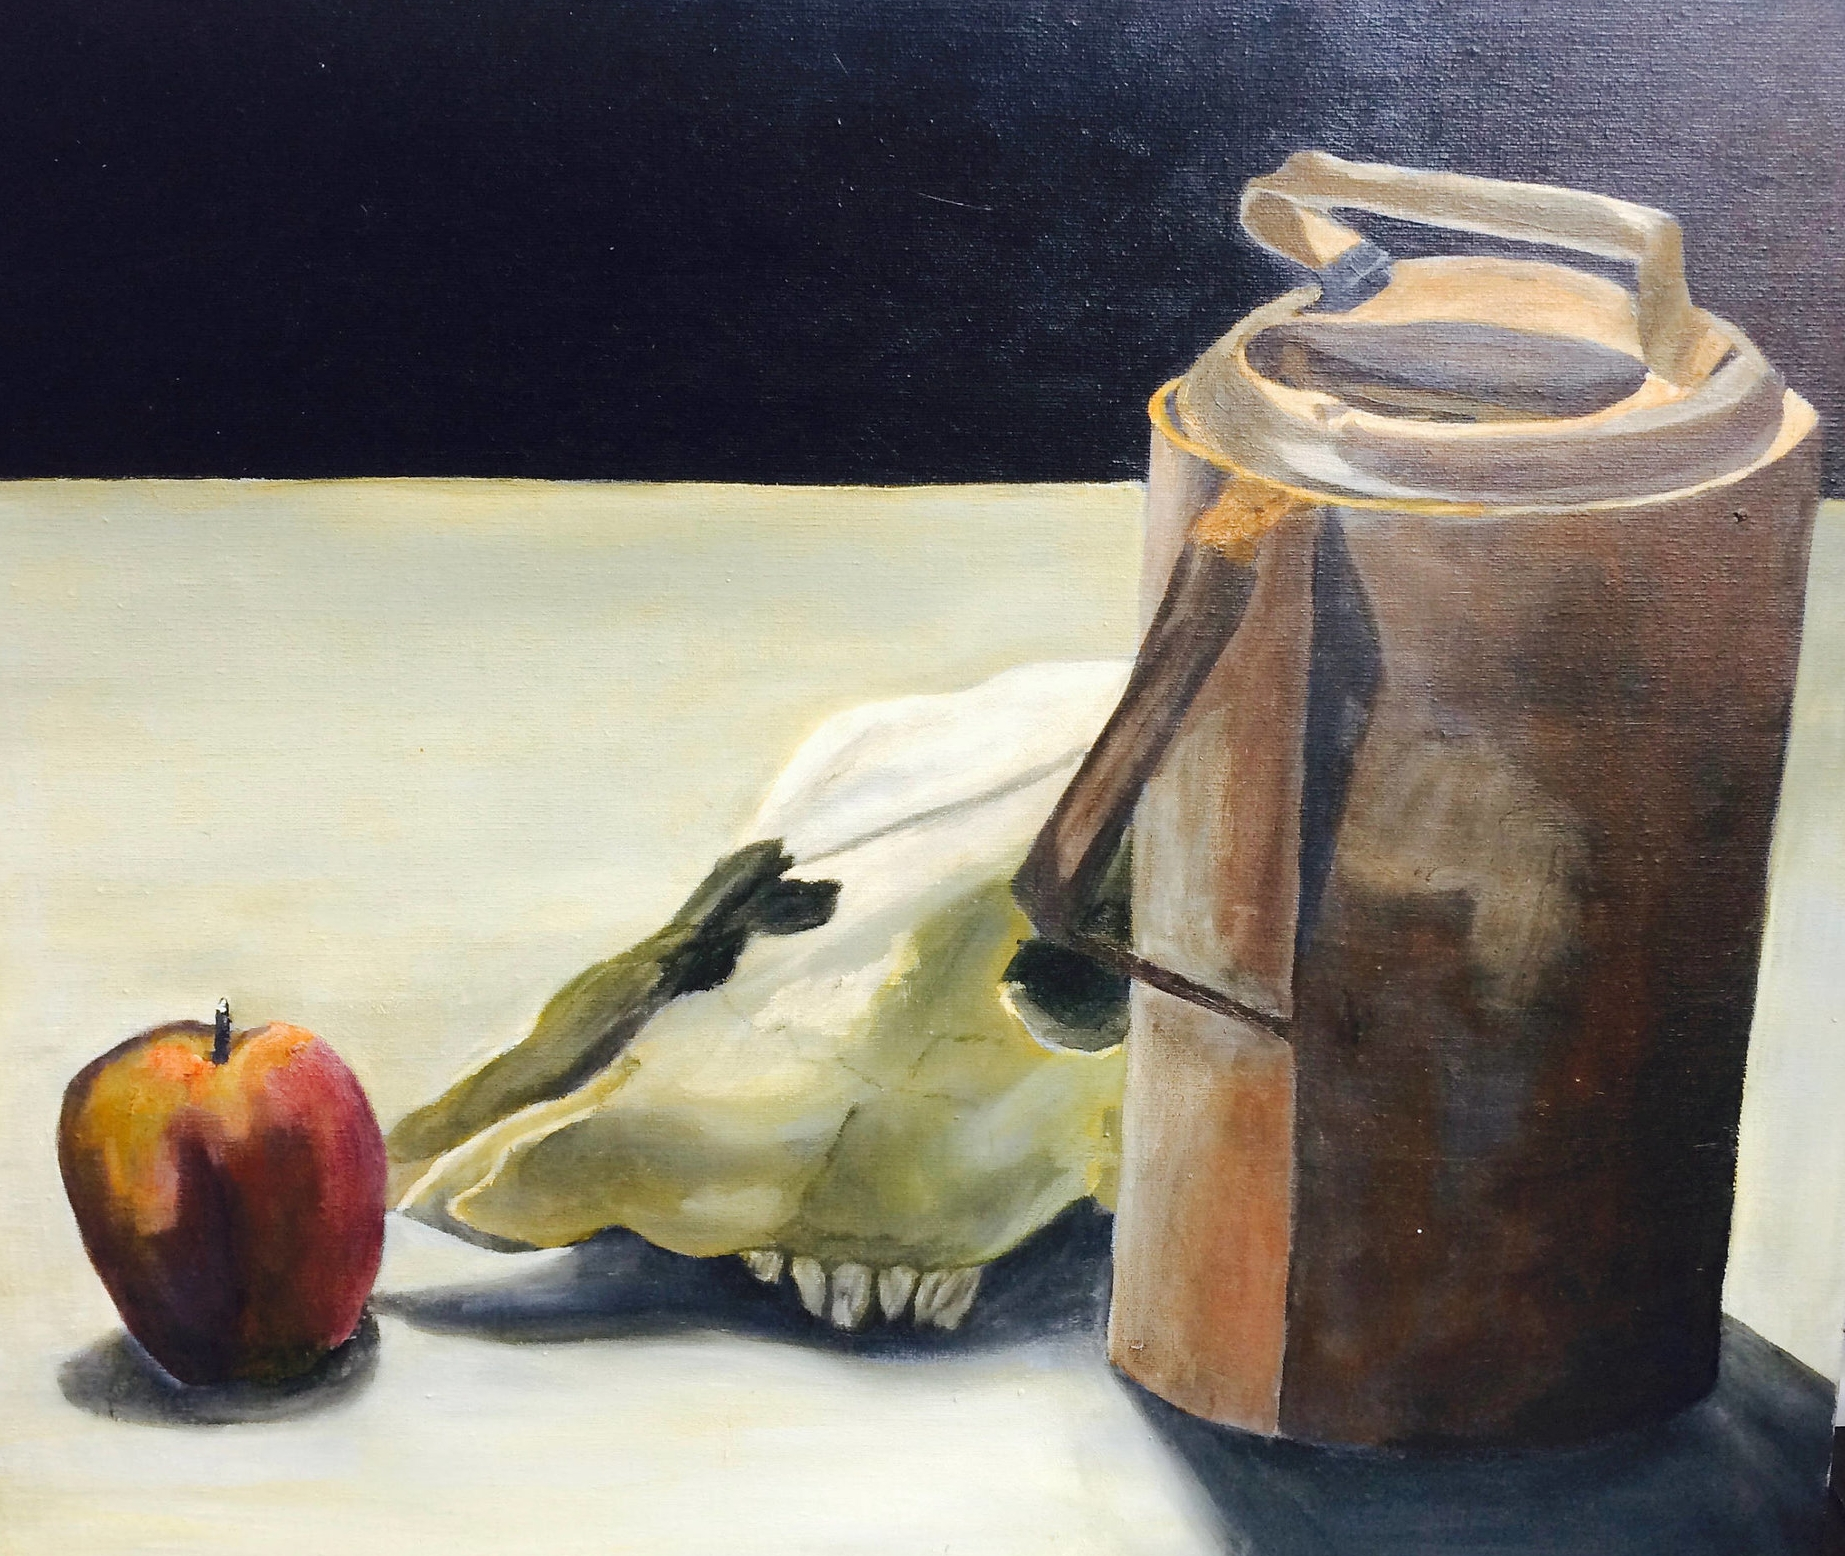 Vintage Original Still Life Painting With Apple & Skull/Vintage Original Painting/Still Life Painting/Acrylic Painting/Skull